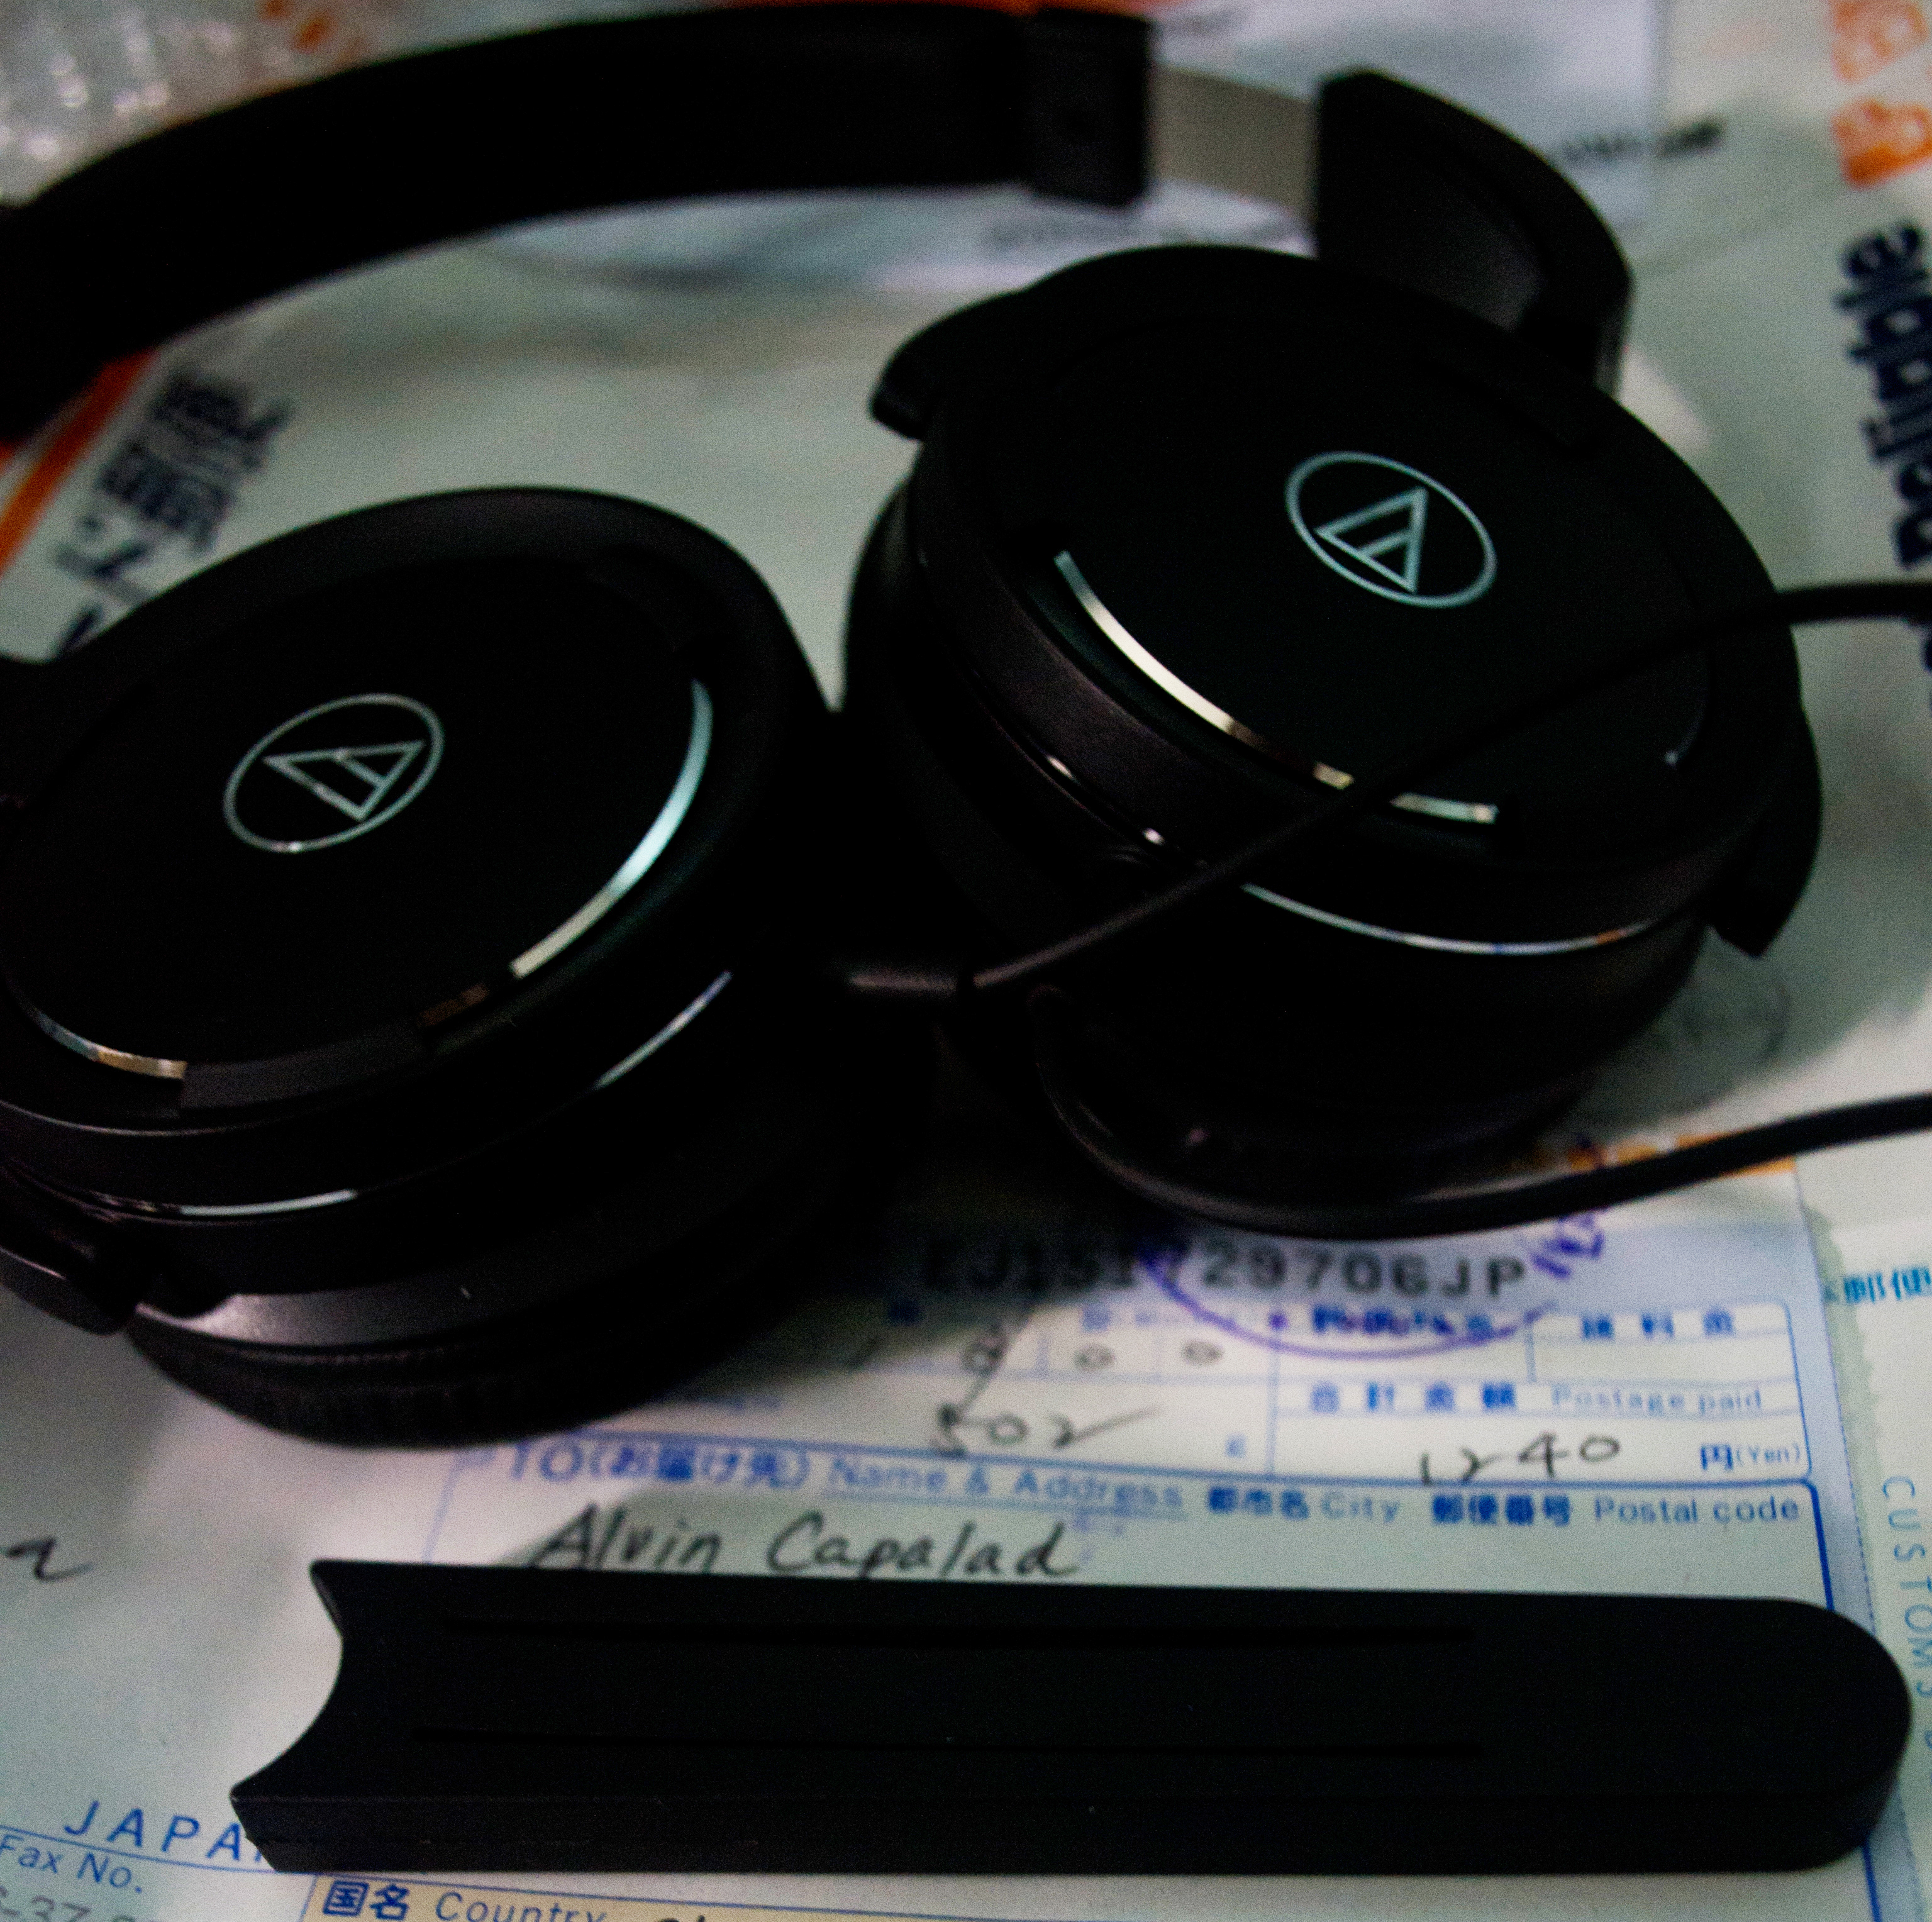 Audio Technica Solid Bass Over Ear Headphones Ath Ws55bk Earphone Cks1100is Fresh Out Of The Box With 0 Burn In Hours I Put Their On My Head Immediately Noticed Signature Hard Clamps An And